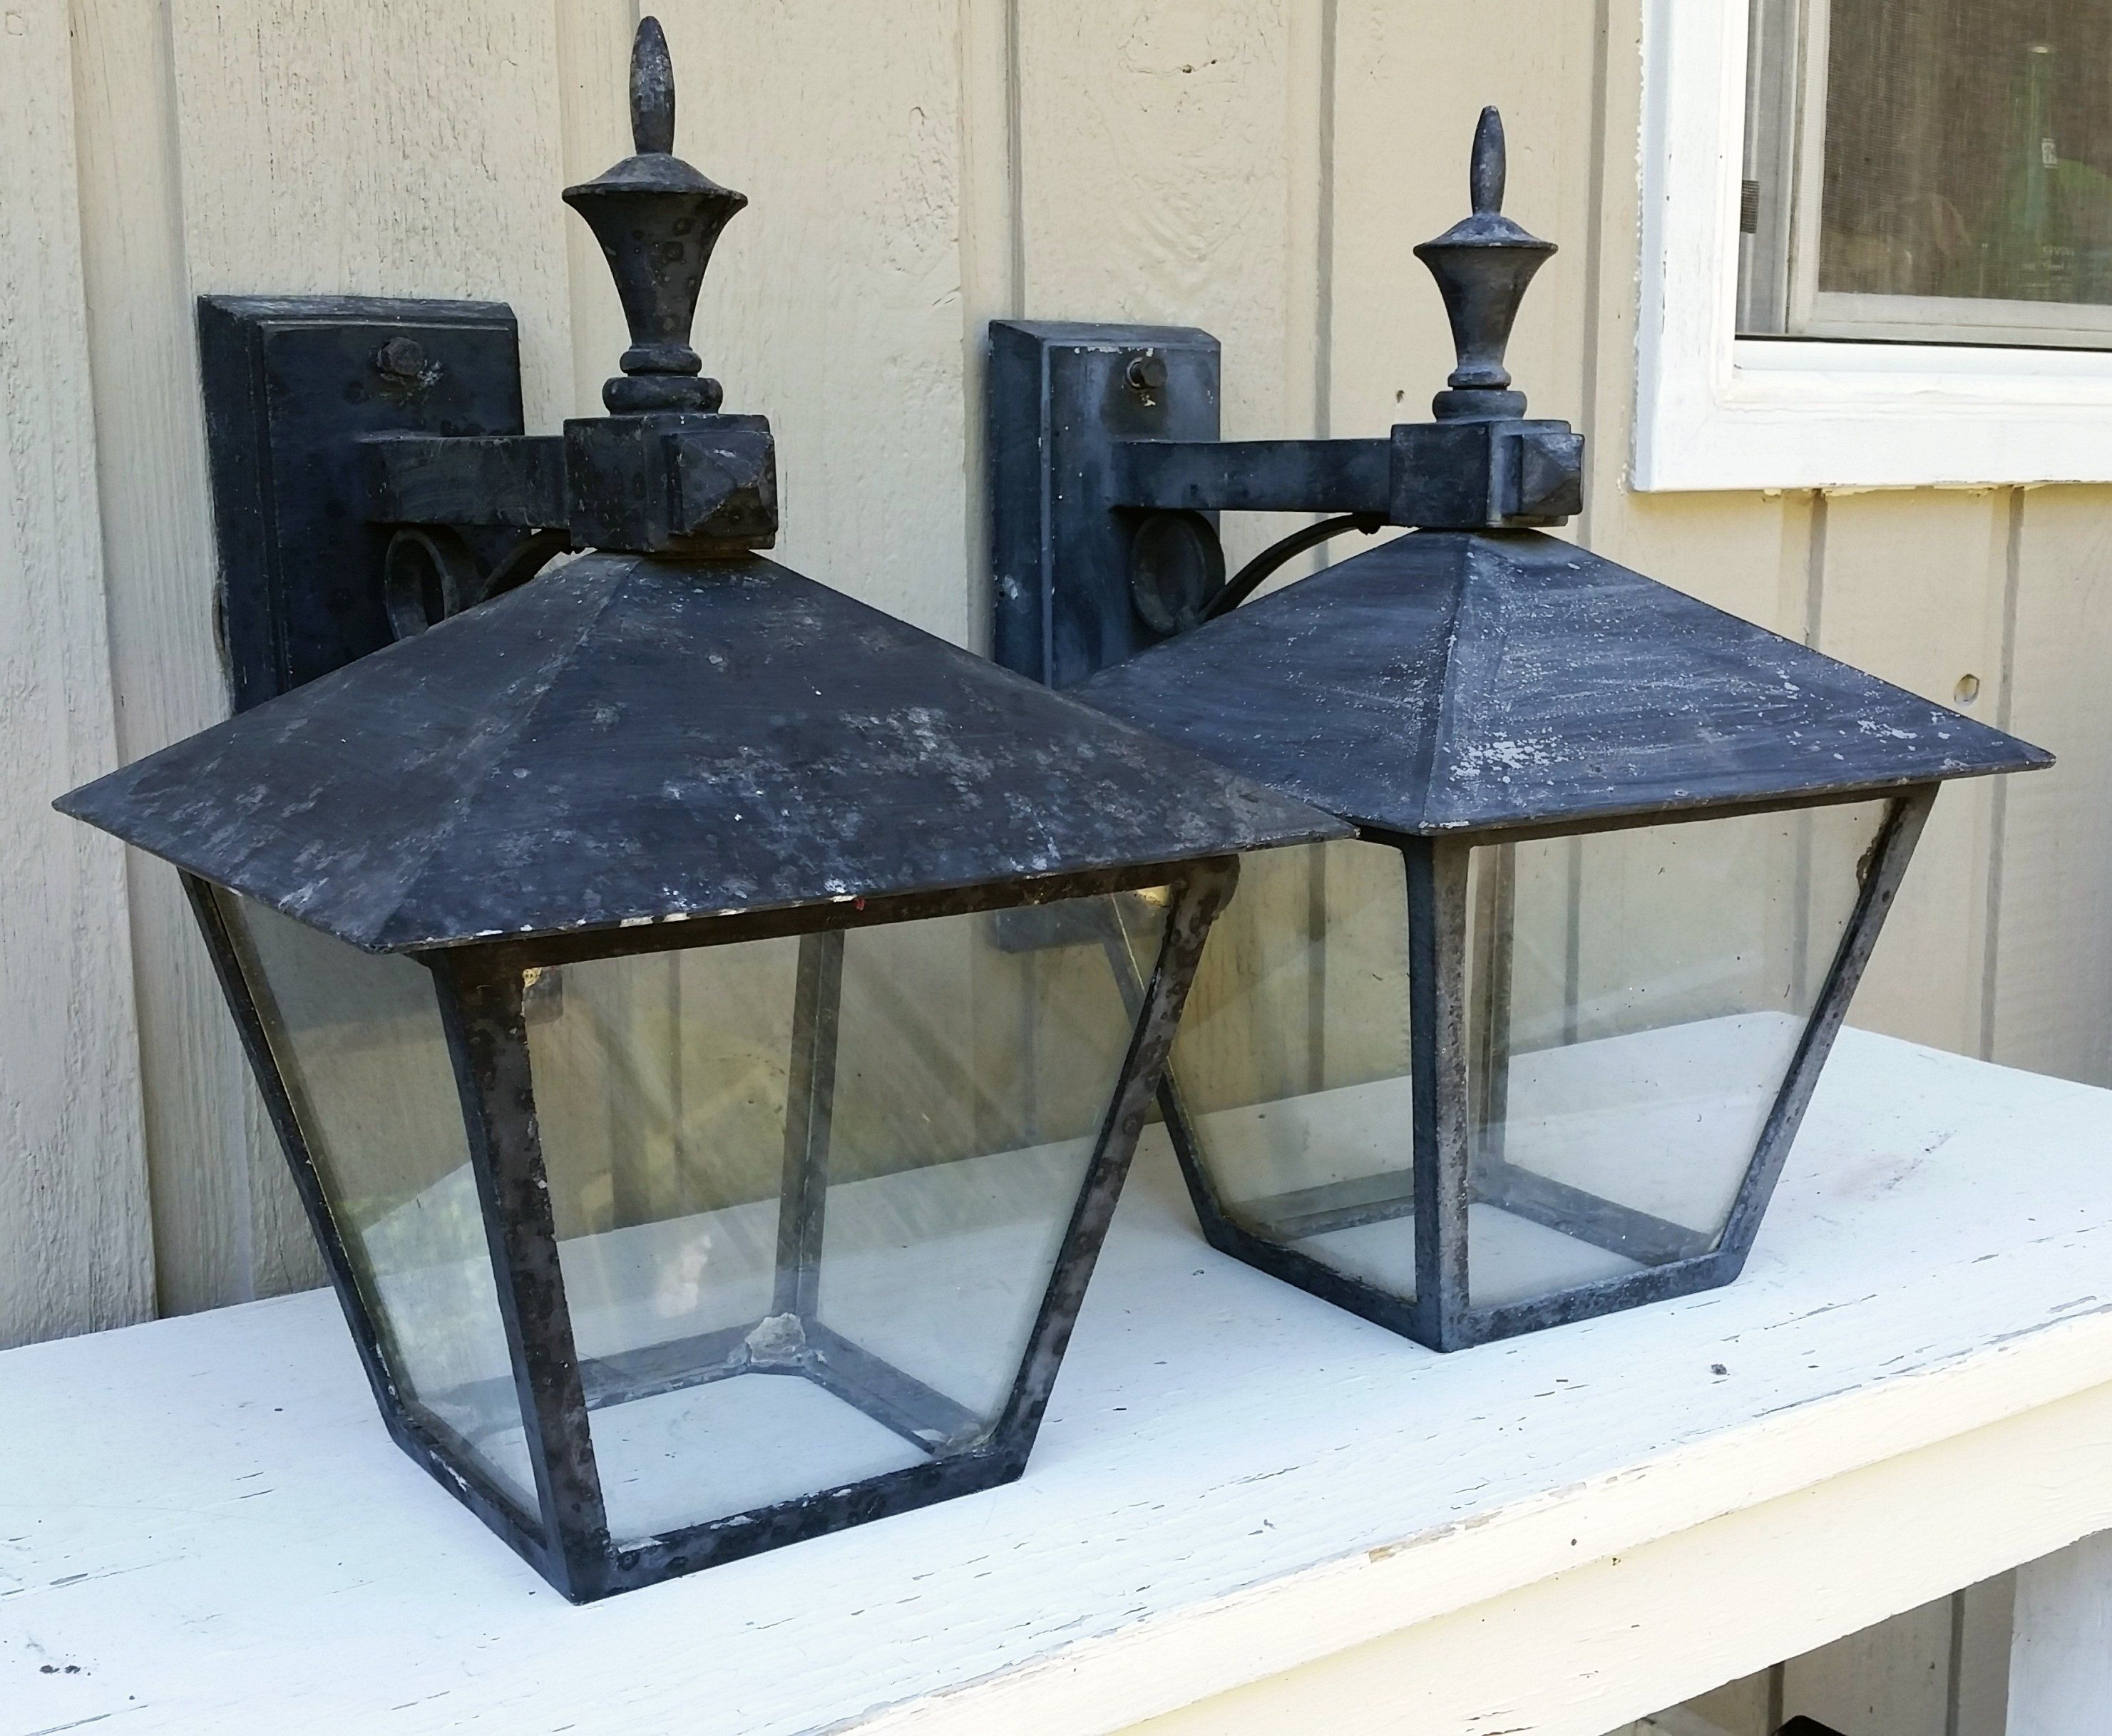 Outdoor Lamps Antique Carriage House Lights Early 1900s Wall Mount Galvanized